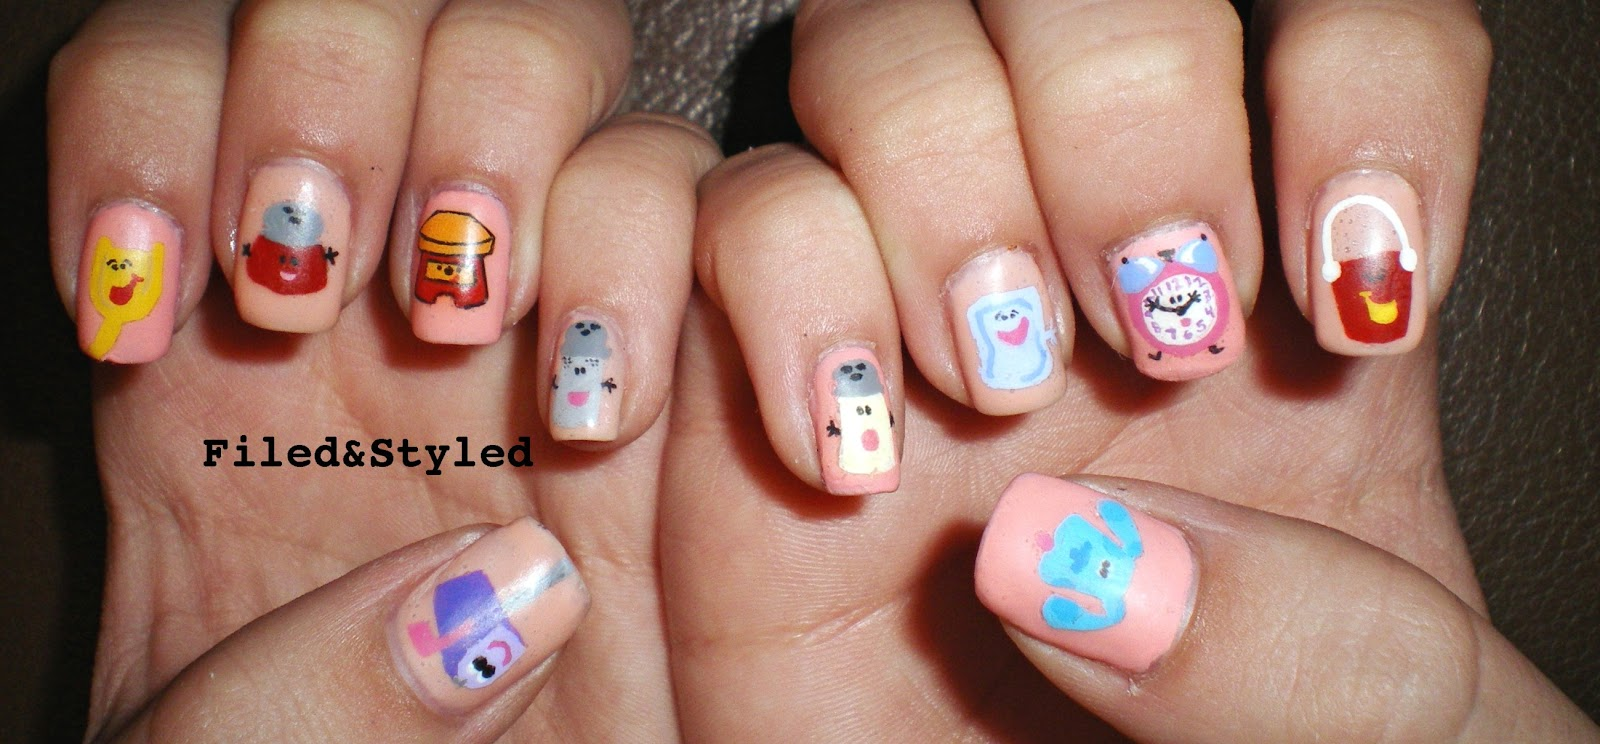 blues clues nails